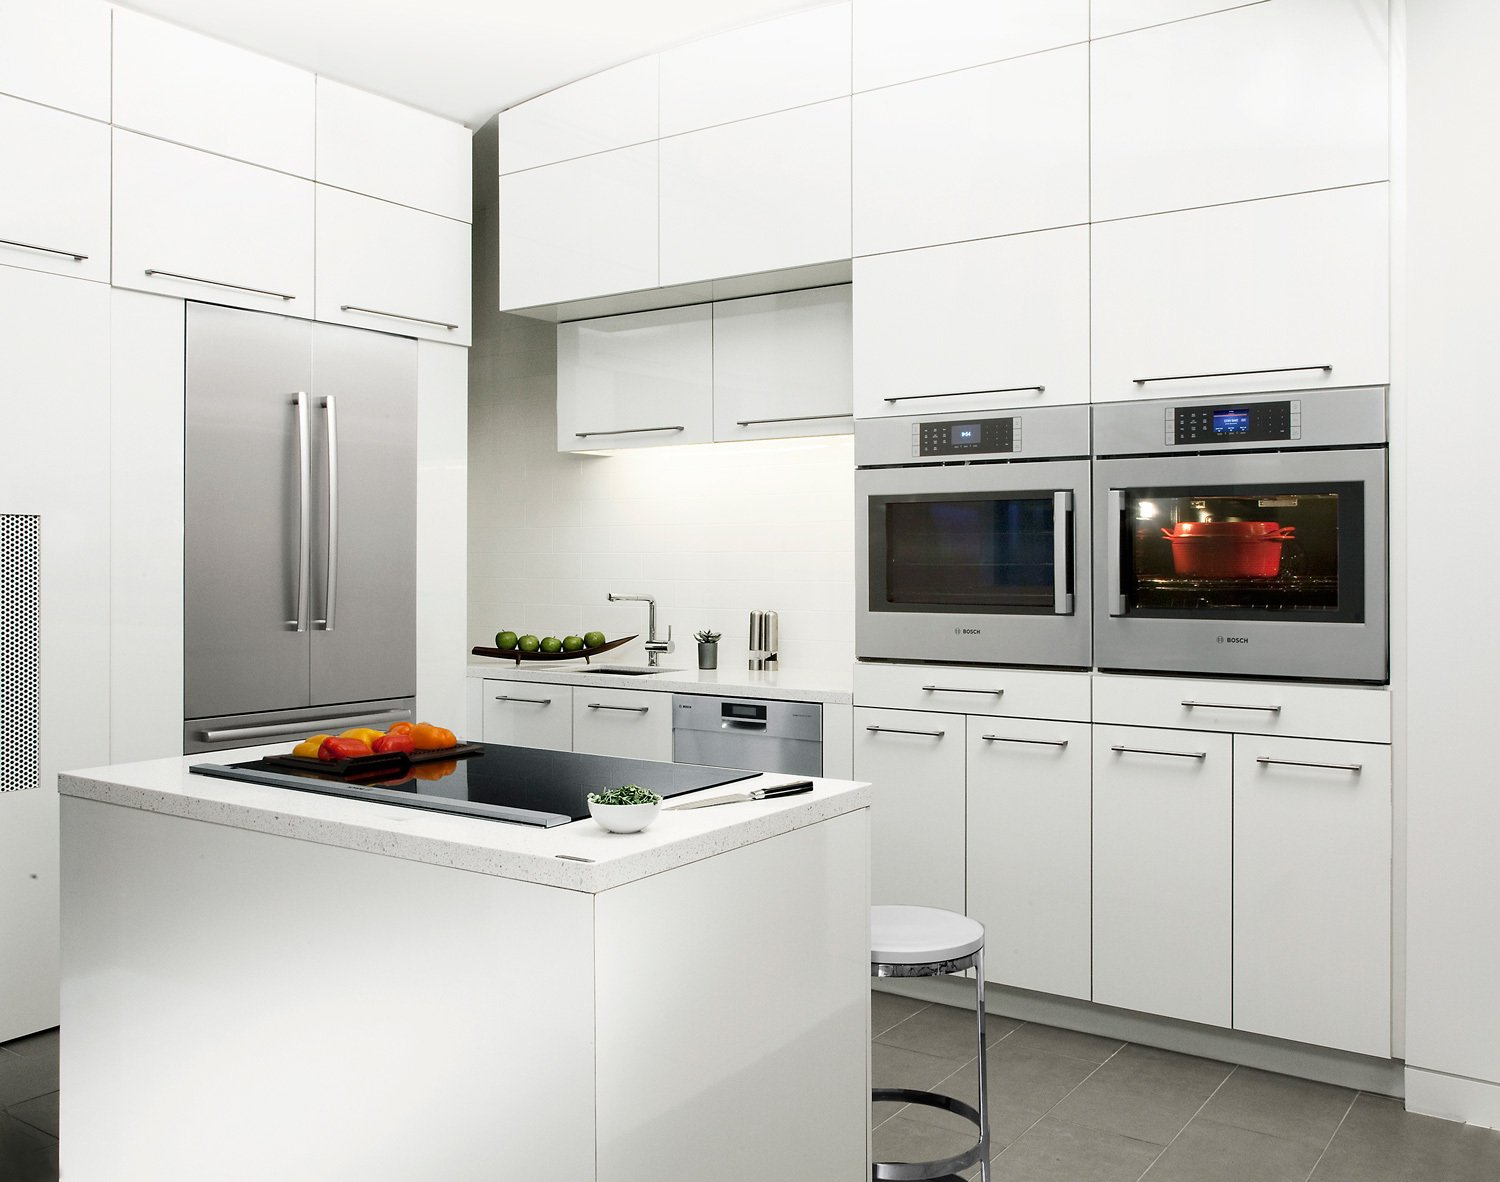 This rational European ethos motivates Bosch appliances' design down to the most minute details. For meals that require large and small pots, the FlexInduction feature on Bosch Benchmark induction cooktops combines two distinct cooking zones into one contiguous area, providing total fluidity of movement. Kitchen by Madainn Jonah Krall